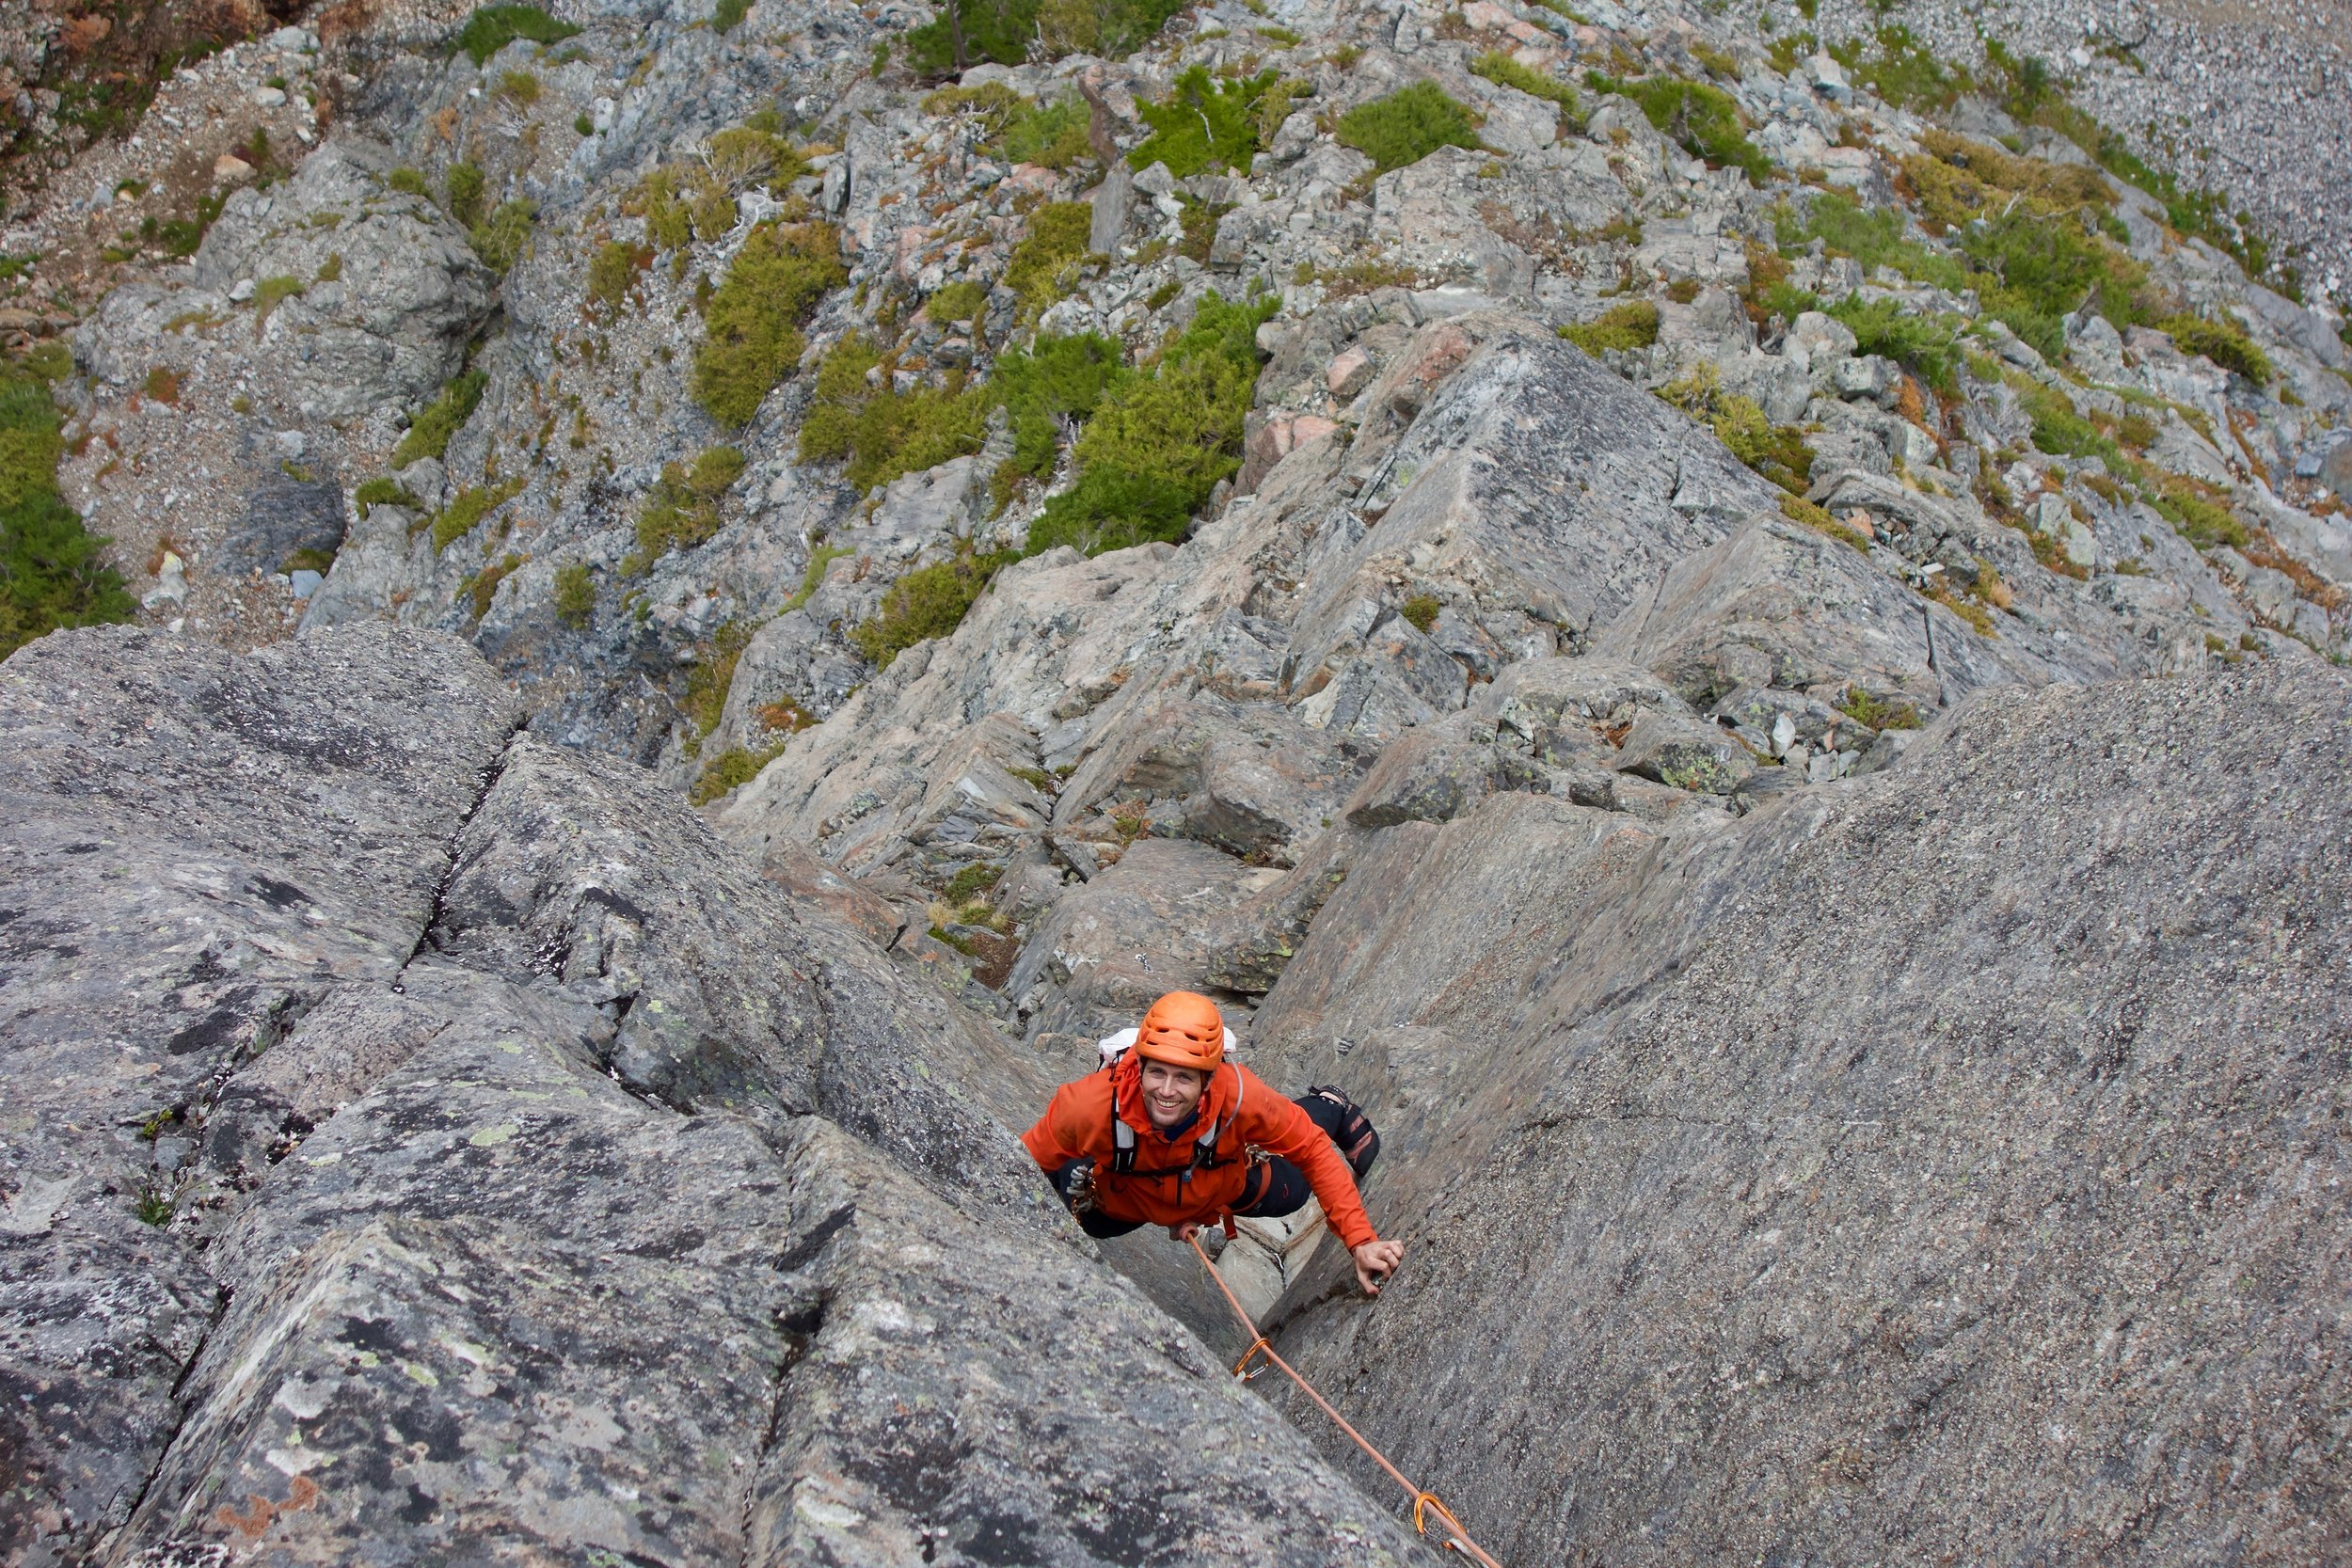 Goran on the dihedral pitch